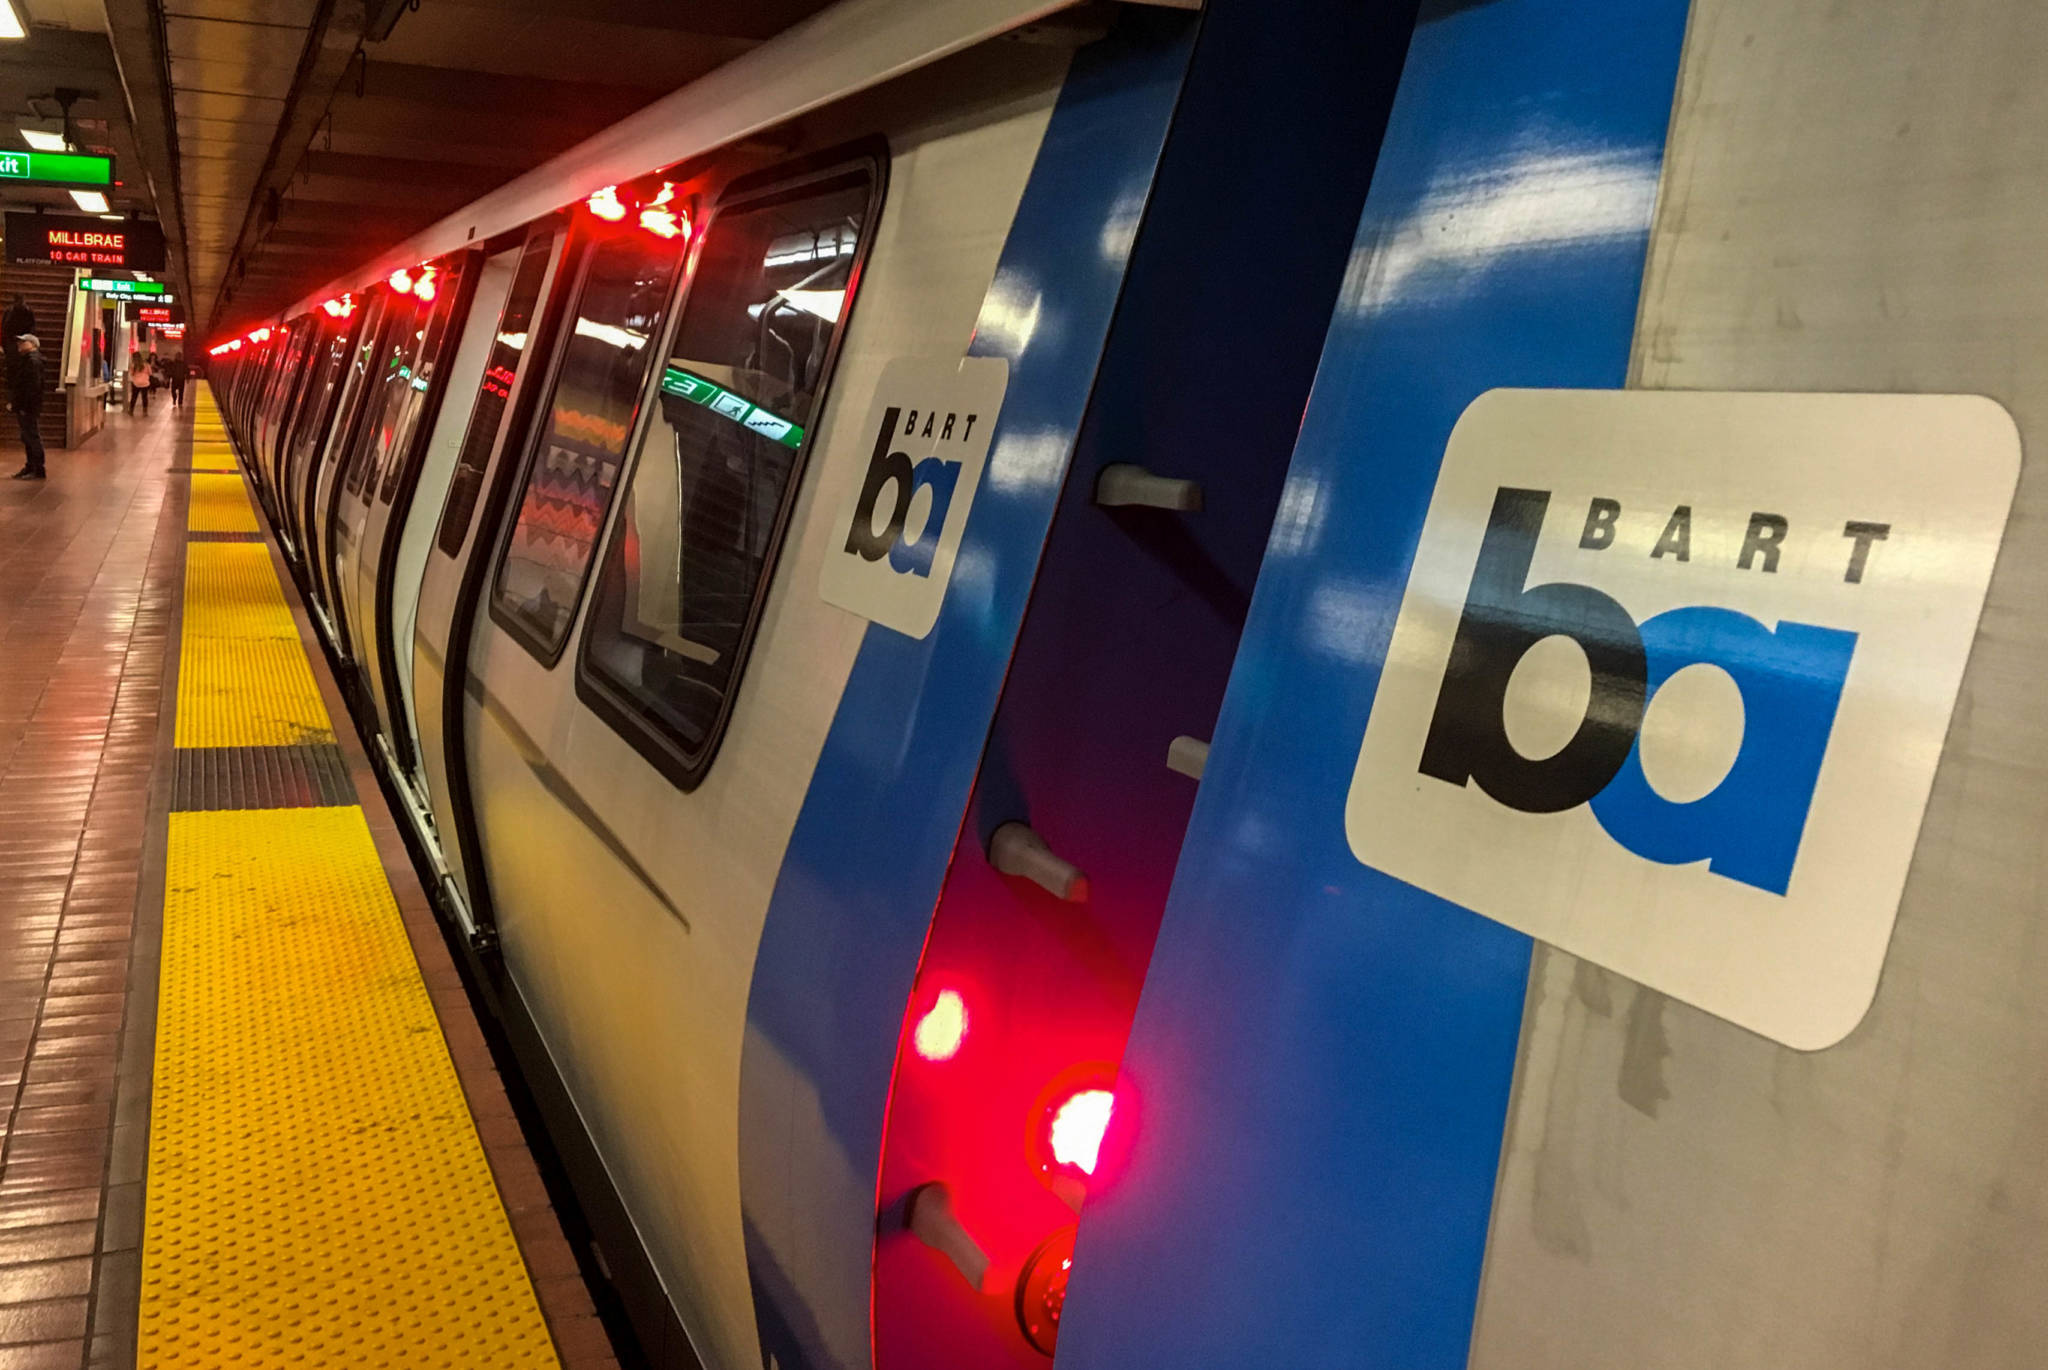 BART Passengers Forced to Walk After New Train Breaks Down in Oakland Tunnel